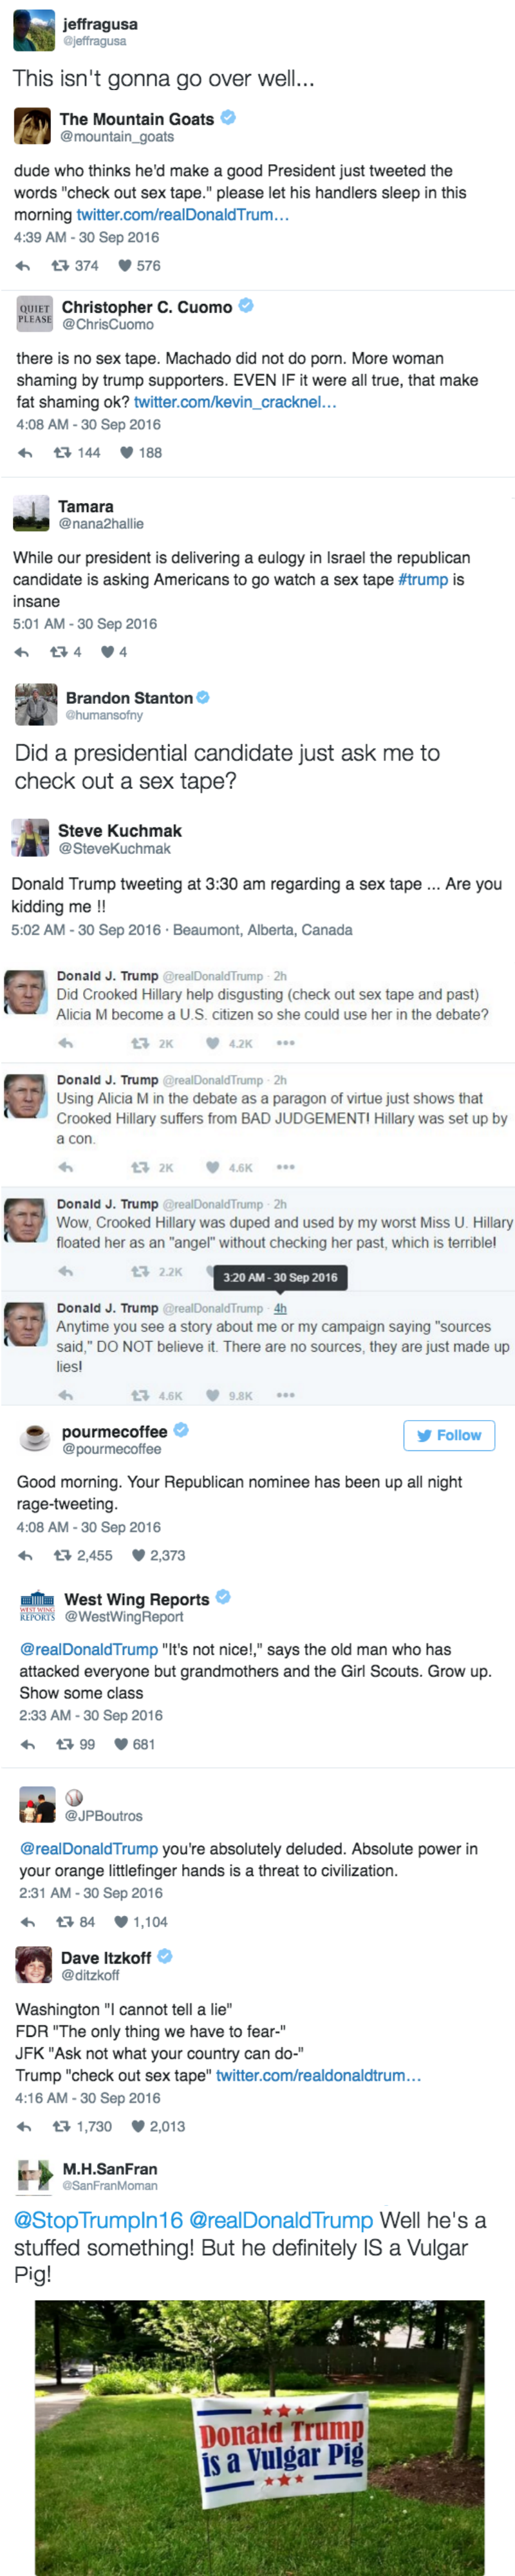 """Text - jeffragusa @jeffragusa This isn't gonna go over well... The Mountain Goats @mountain_goats dude who thinks he'd make a good President just tweeted the words """"check out sex tape."""" please let his handlers sleep in this morning twitter.com/realDonaldTrum... 4:39 AM -30 Sep 2016 t 374 576 QUIET Christopher C. Cuomo @ChrisCuomo PLEASE there is no sex tape. Machado did not do porn. More woman shaming by trump supporters. EVEN IF it were all true, that make fat shaming ok? twitter.com/kevin_crac"""